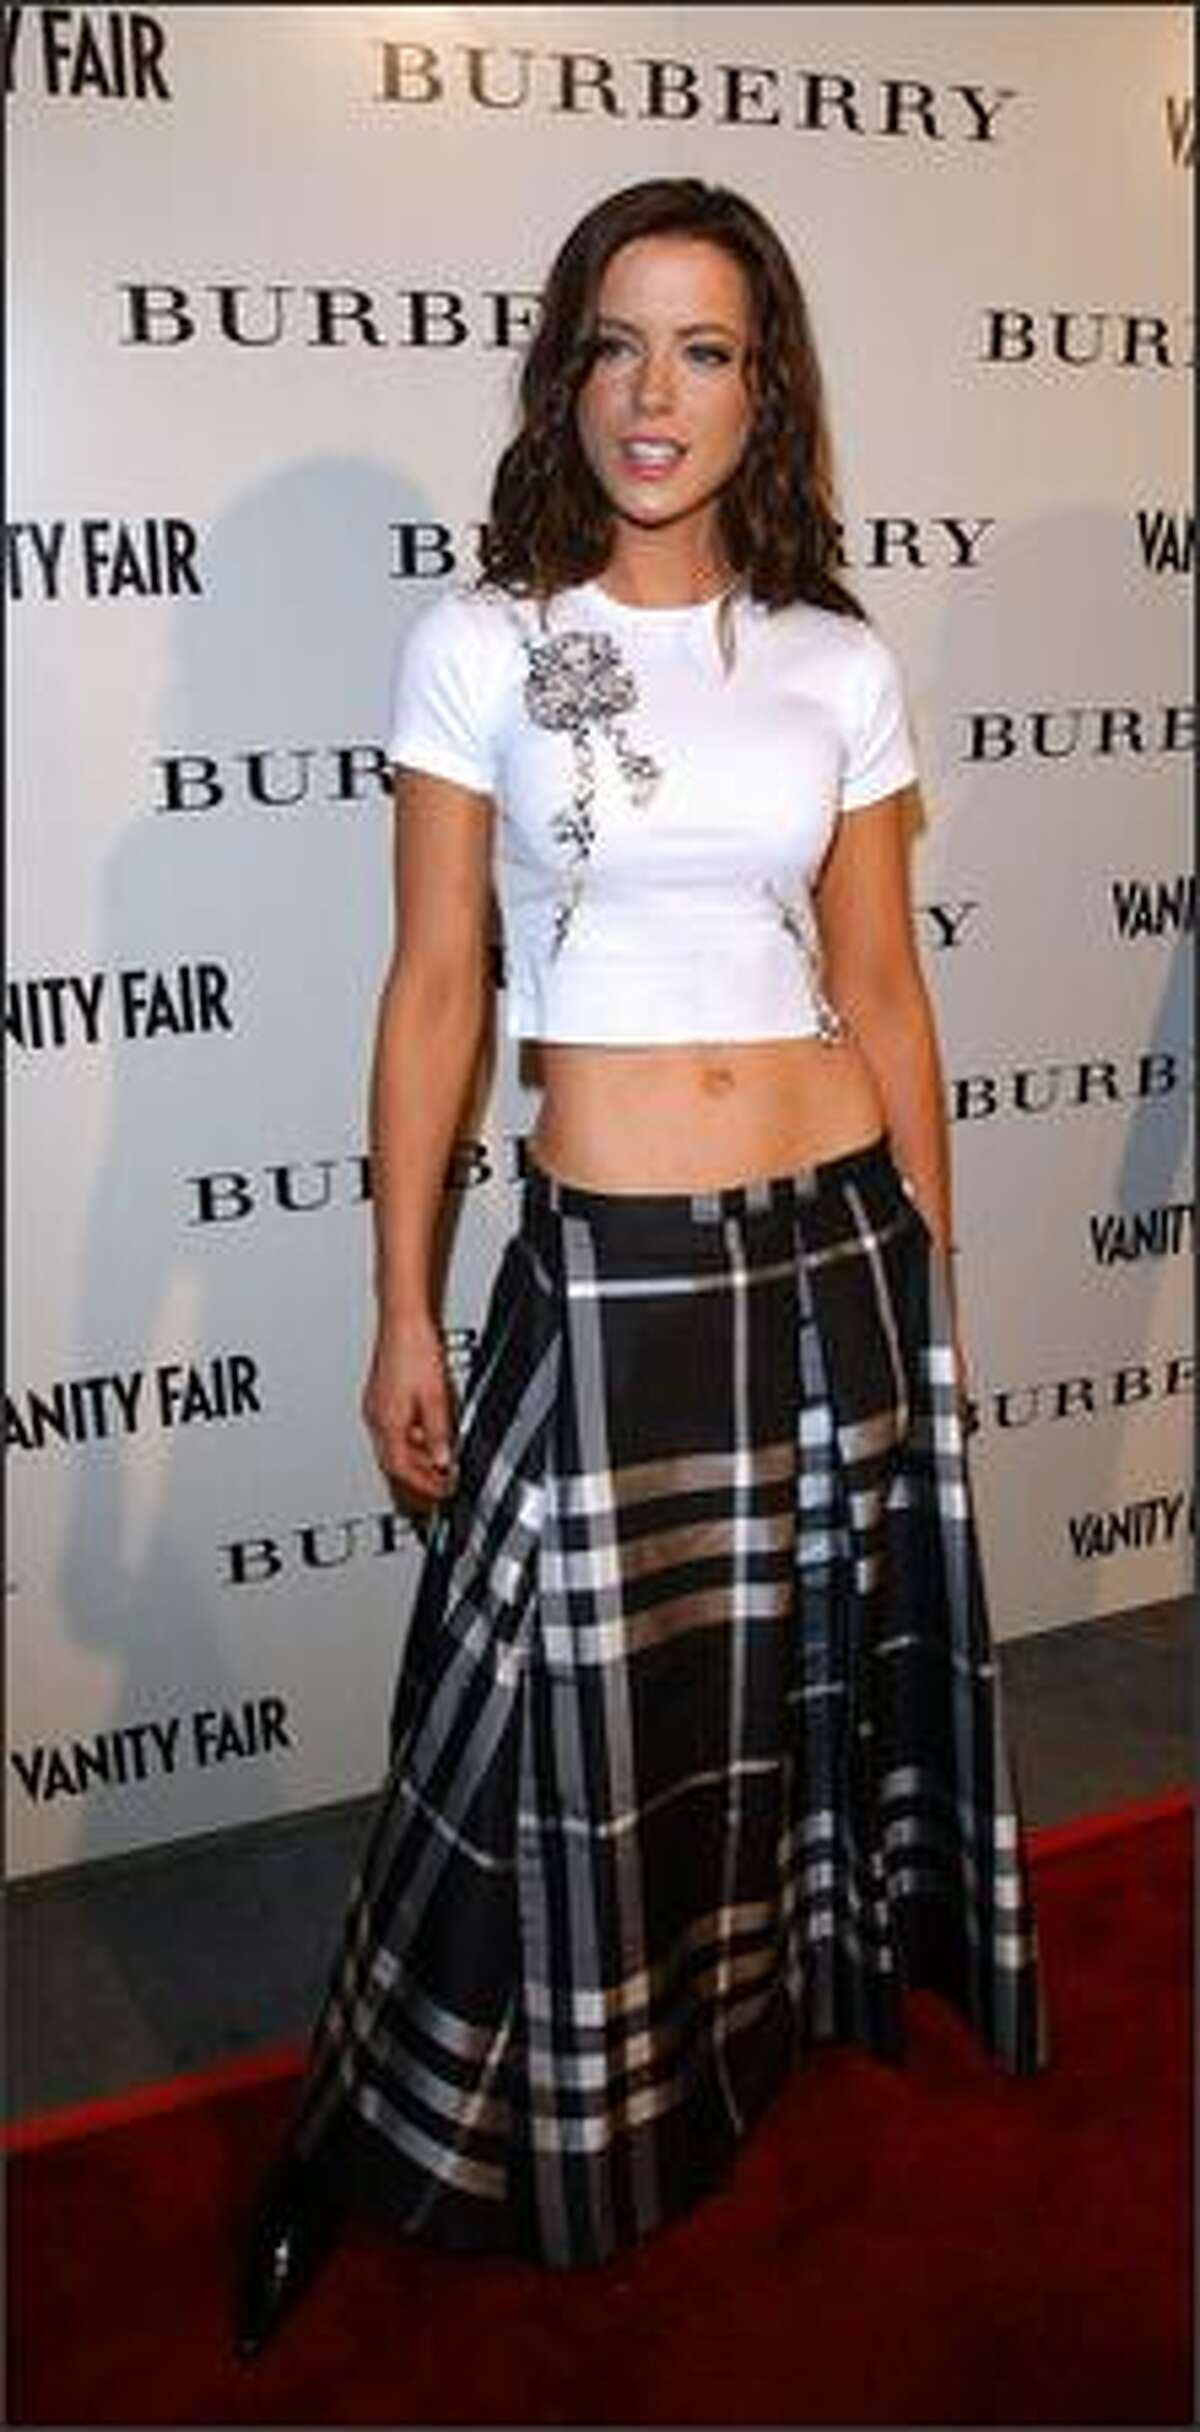 Kate Beckinsale attends the grand opening of the Los Angeles Burberry store Oct. 25, 2001 in Beverly Hills, Calif. The event benefitted the Shakespeare Festival L.A.